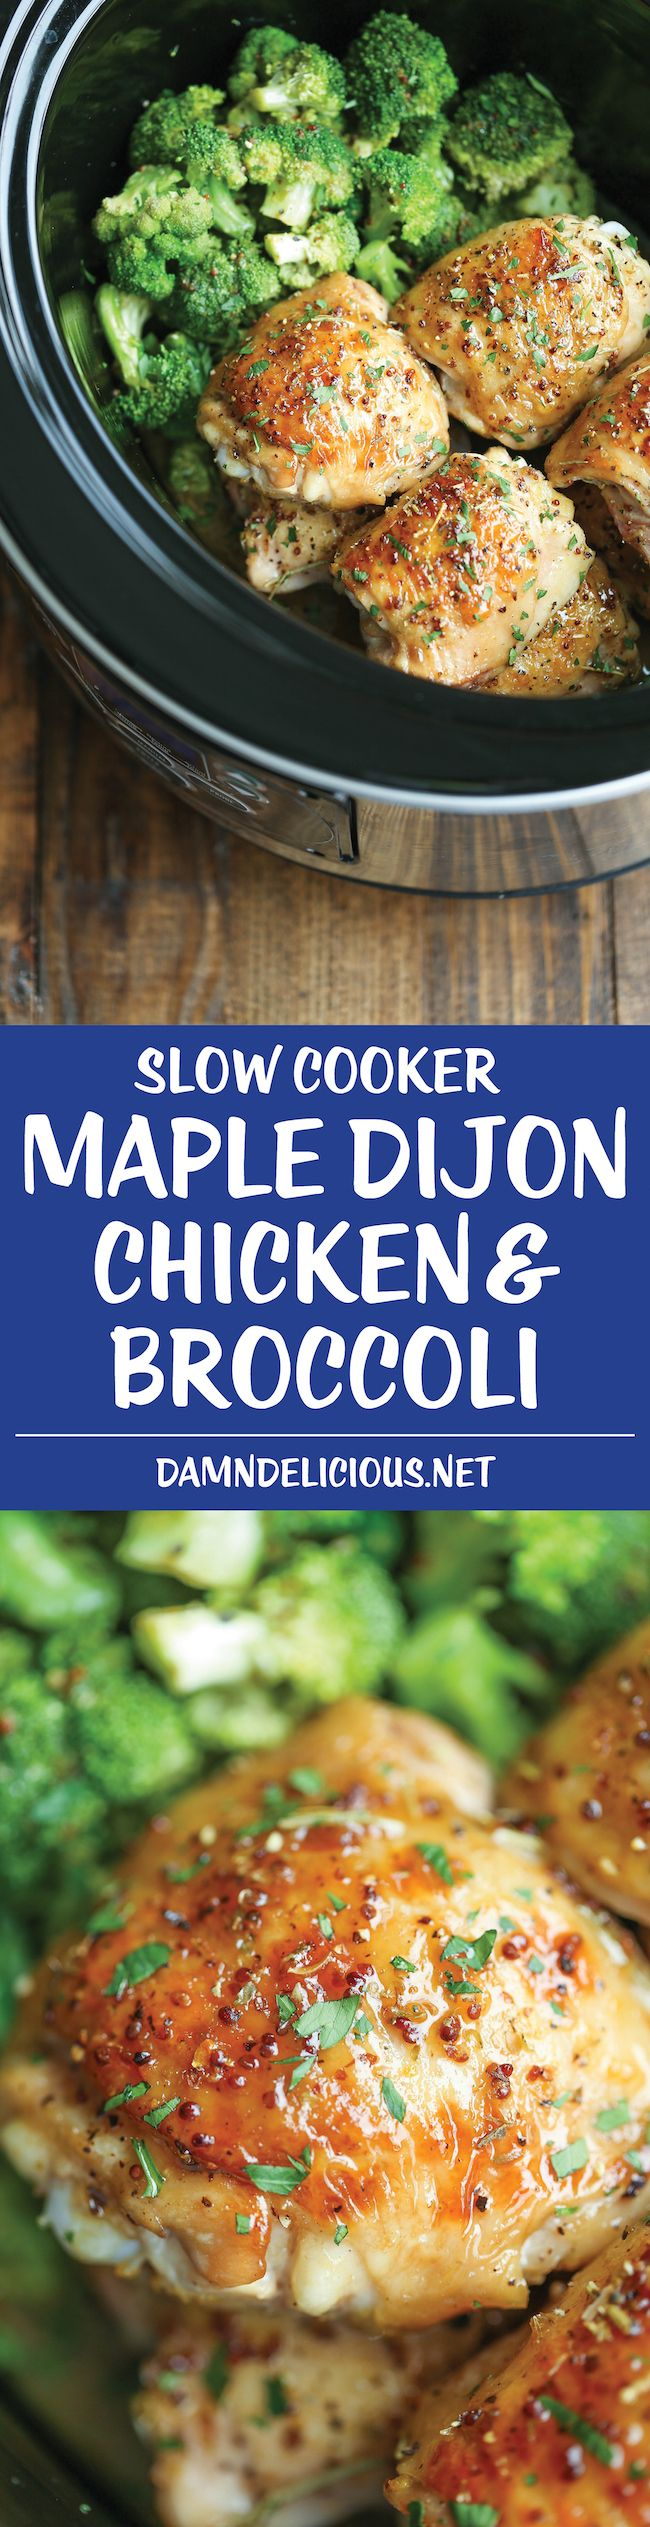 Slow Cooker Maple Dijon Chicken and Broccoli - Sweet, tangy and packed with so much flavor, made right in your crockpot!